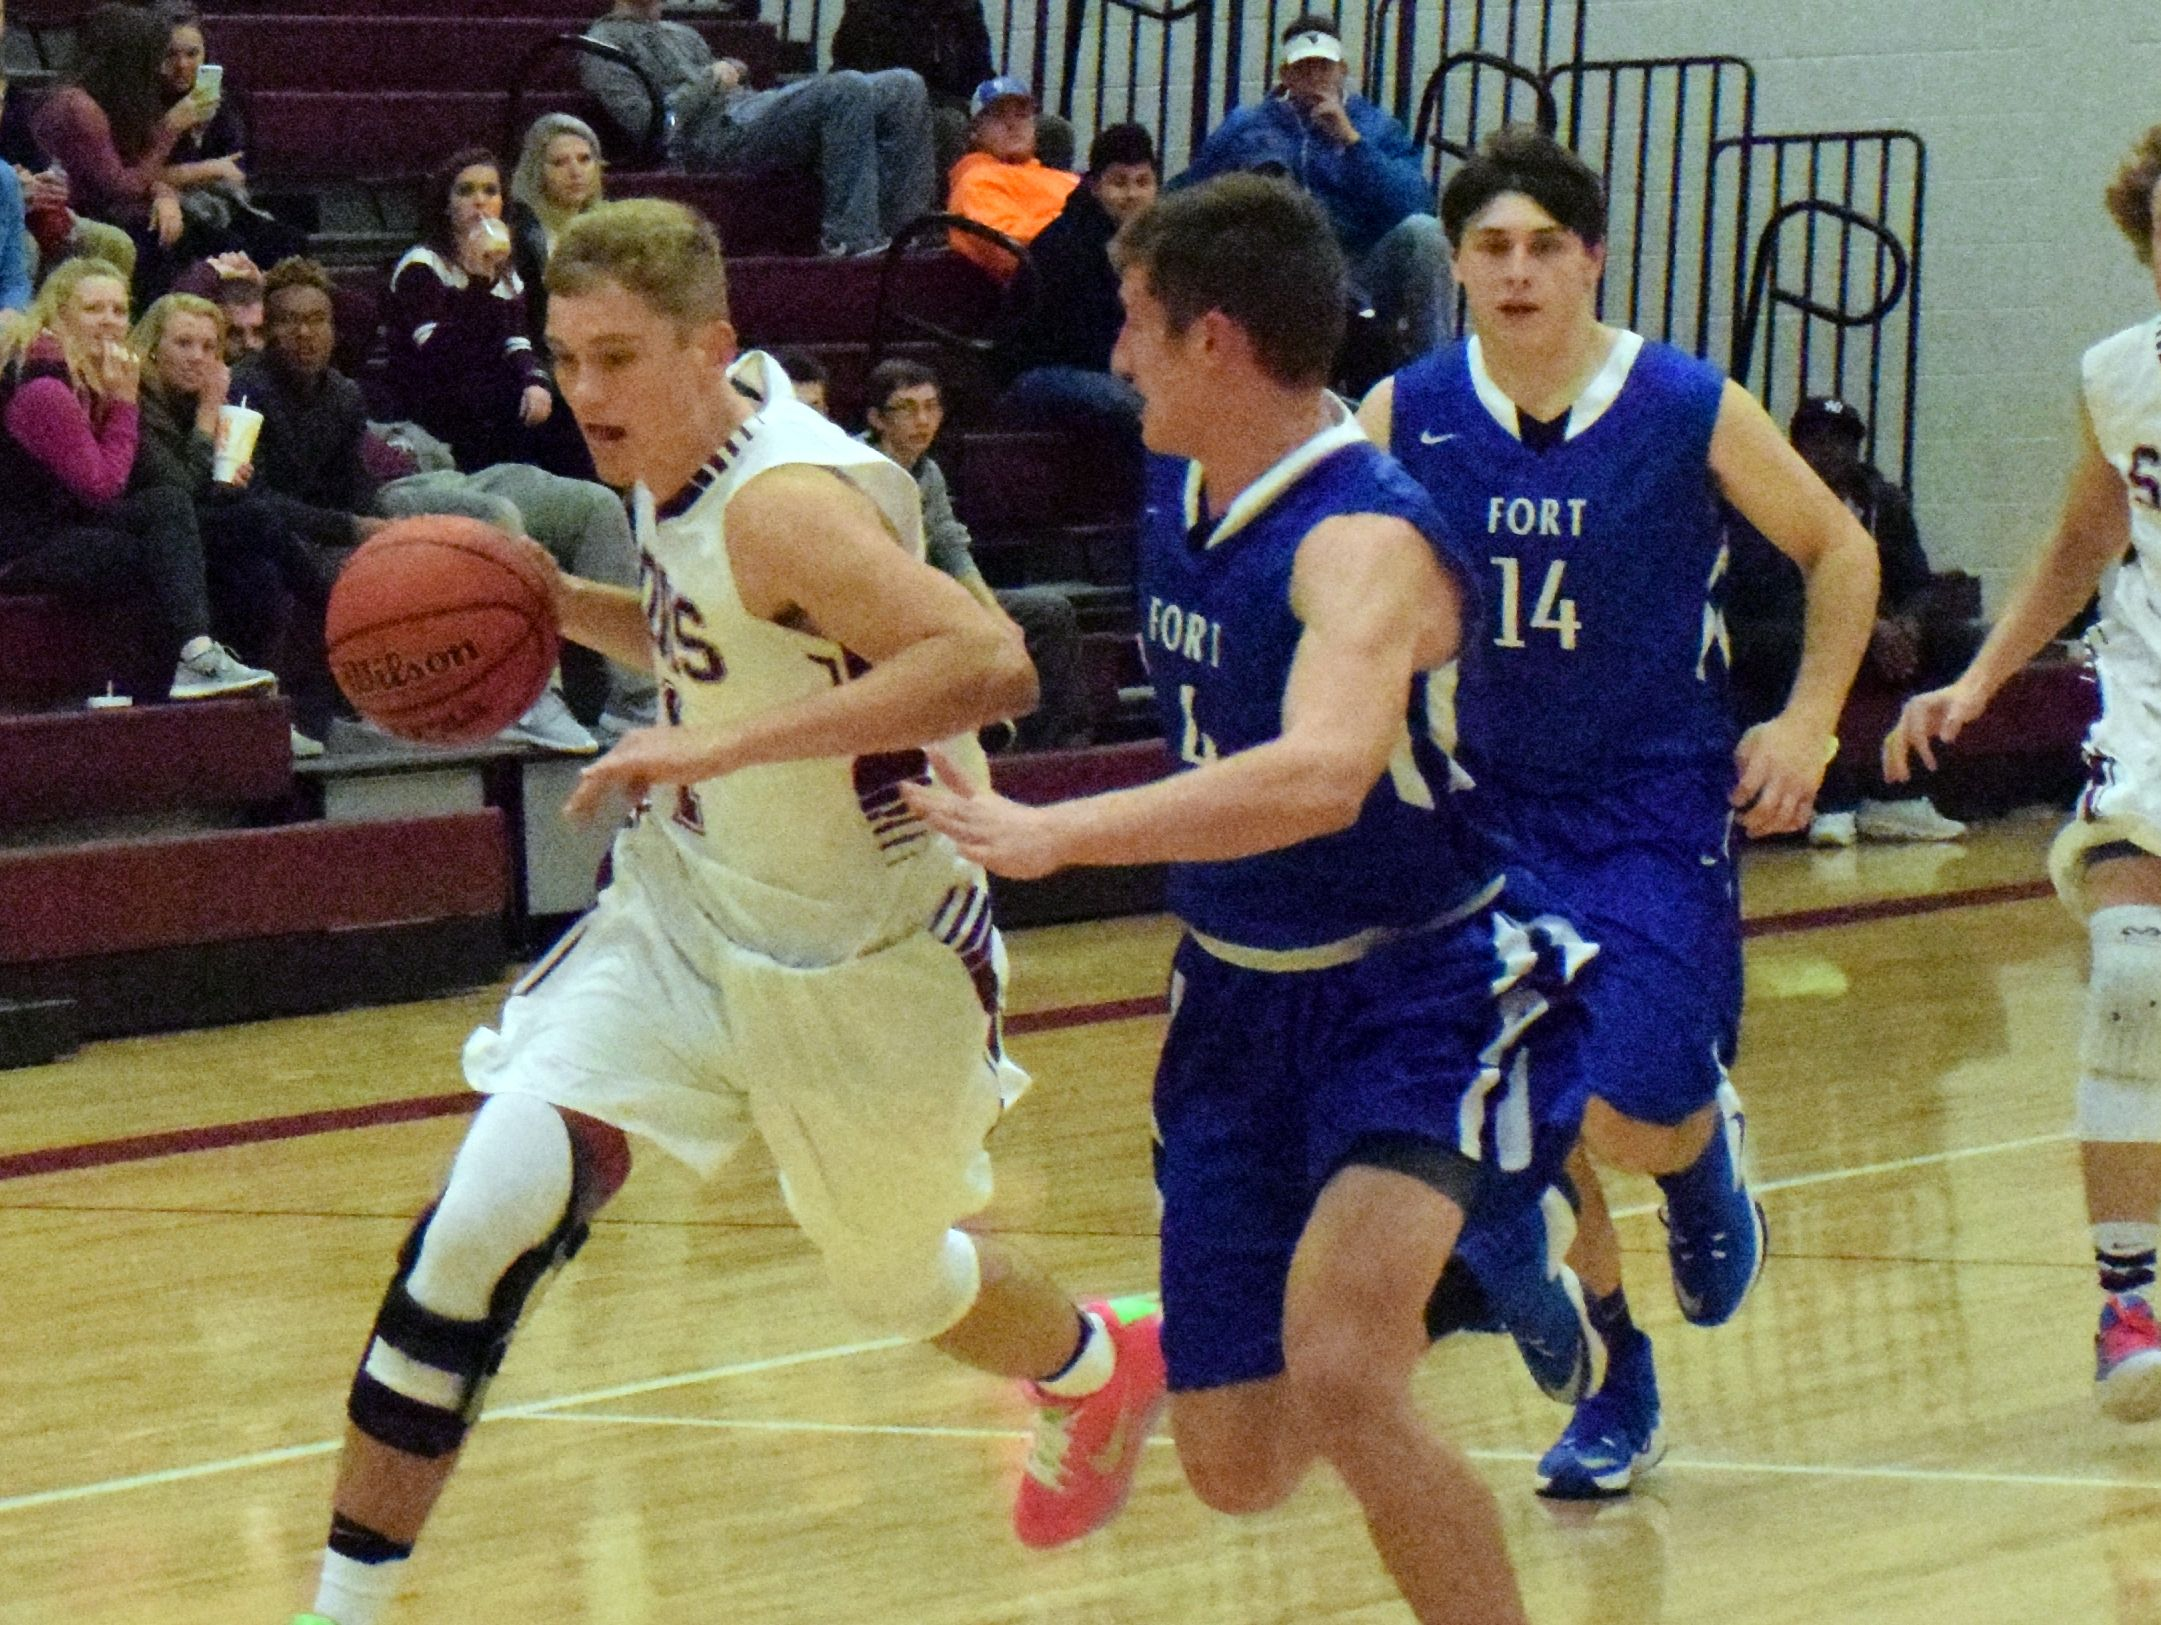 Stuarts Draft's Carson Peck, left, drives on Fort Defiance's Patton Fitzwater during the first half of their boys basketball game on Tuesday, Dec. 13, 2016, at Stuarts Draft High School in Stuarts Draft, Va.